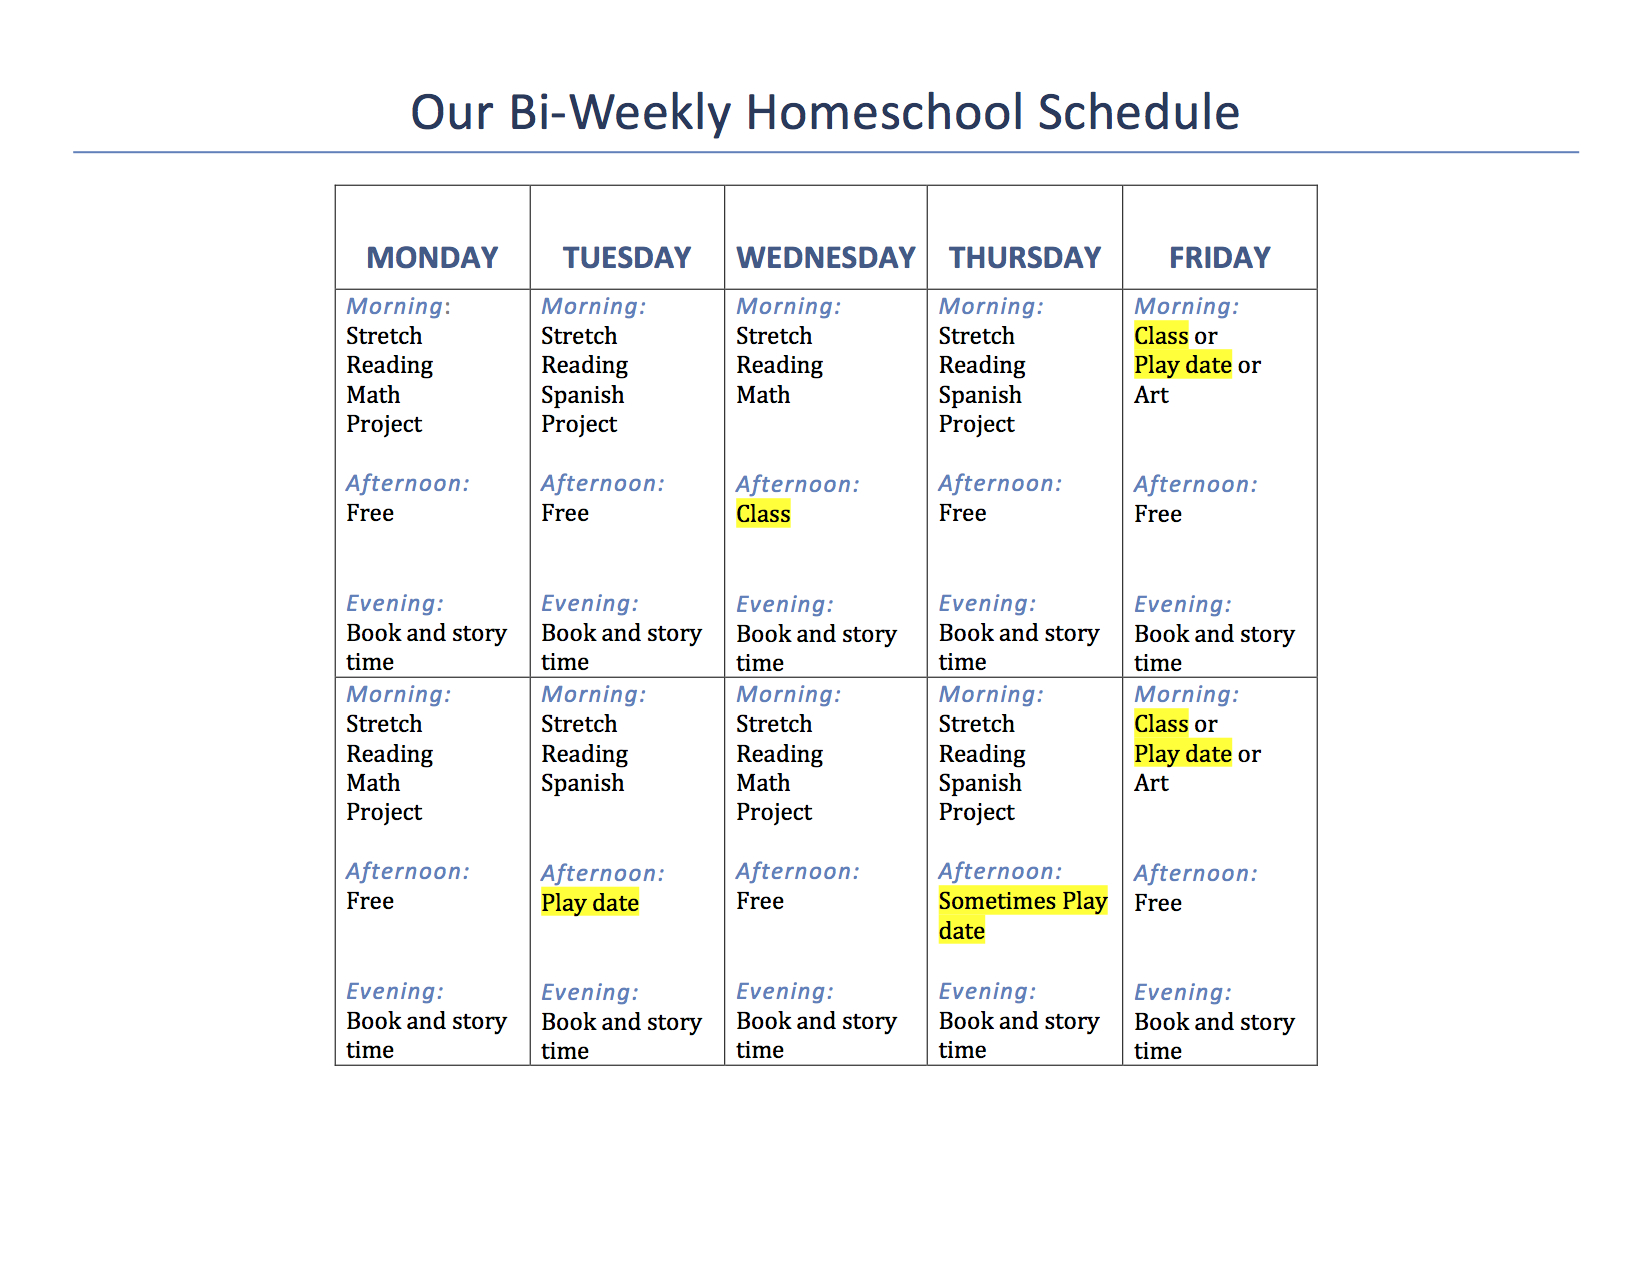 Worksheet Kindergarten Curriculum Free our 1st grade homeschool schedule and curriculum mama of letters mol weekly hs schedule